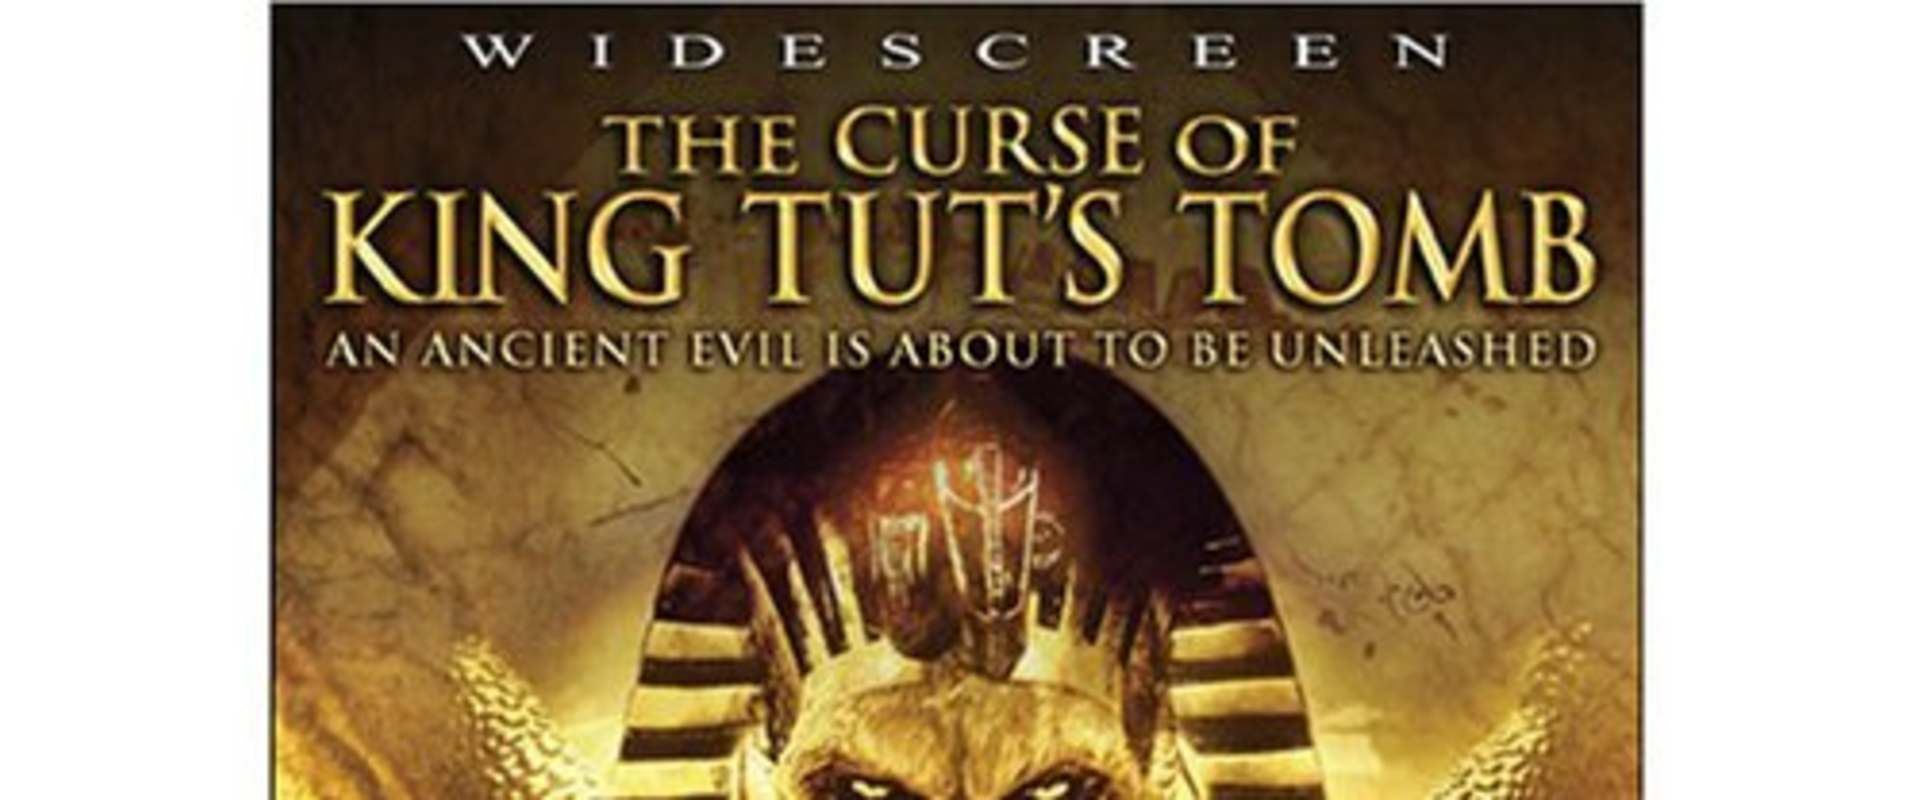 The Curse Of King Tuts Tomb Torrent: Watch The Curse Of King Tut's Tomb On Netflix Today